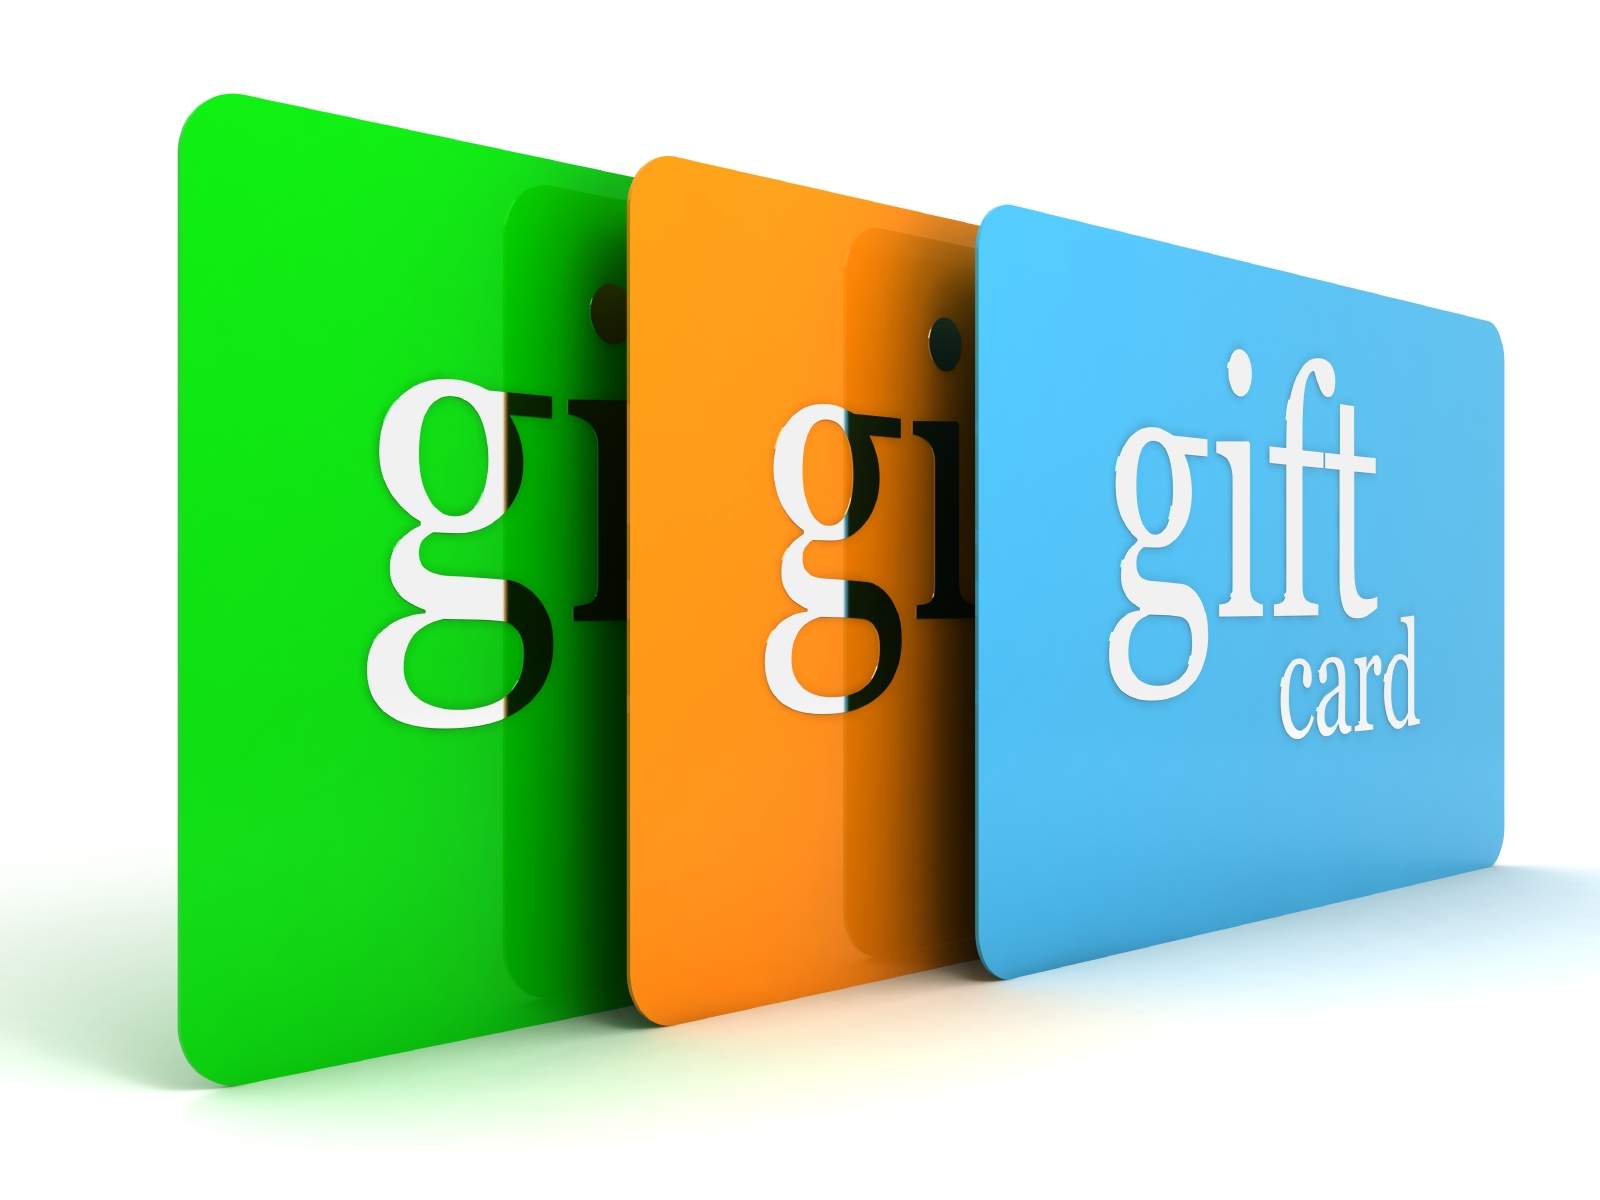 Global Gift Cards Market Size, Share and Industry Forecast - 2023